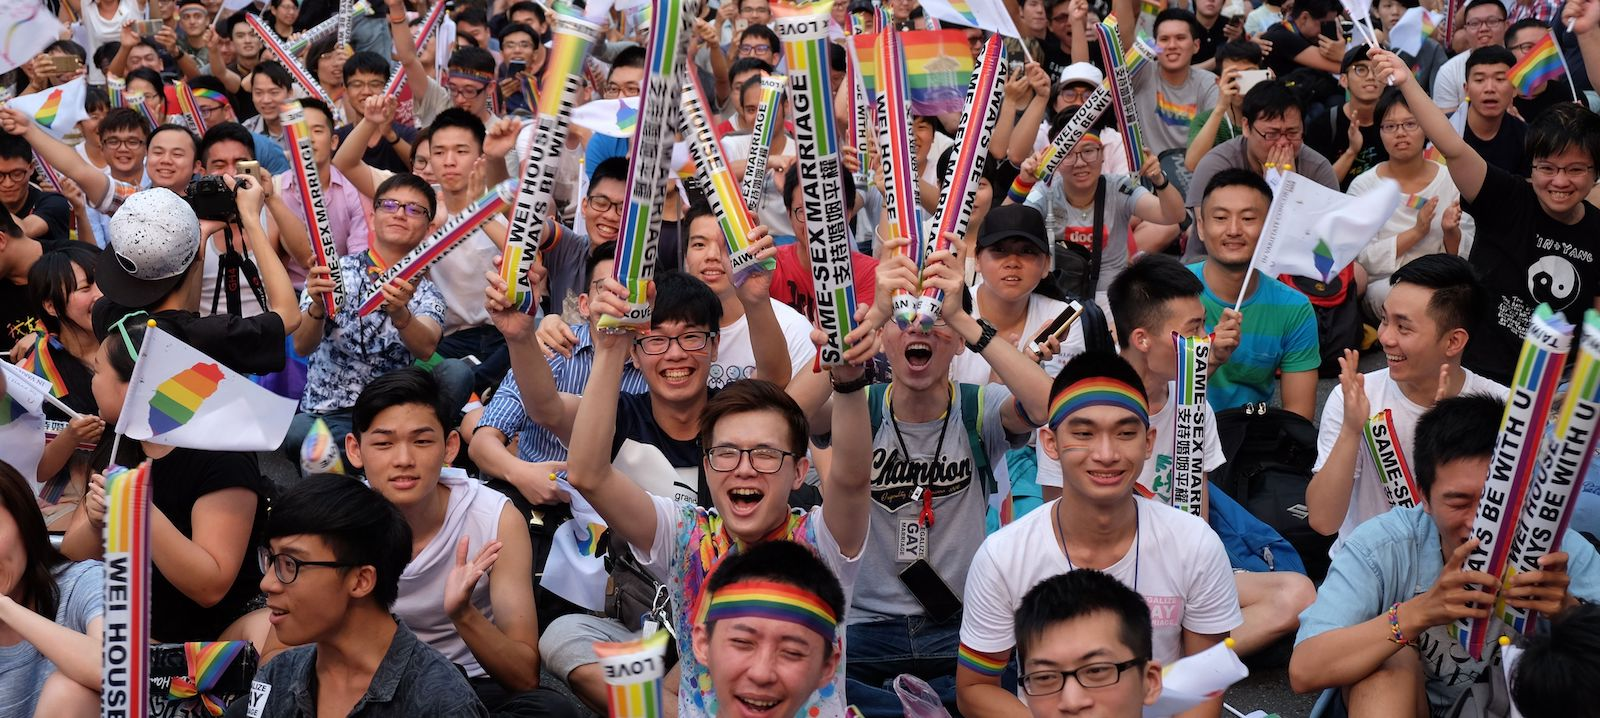 Crowds of pro-gay marriage supporters, in Taiwan, 2017 (Photo: Sam Yeh via Getty)